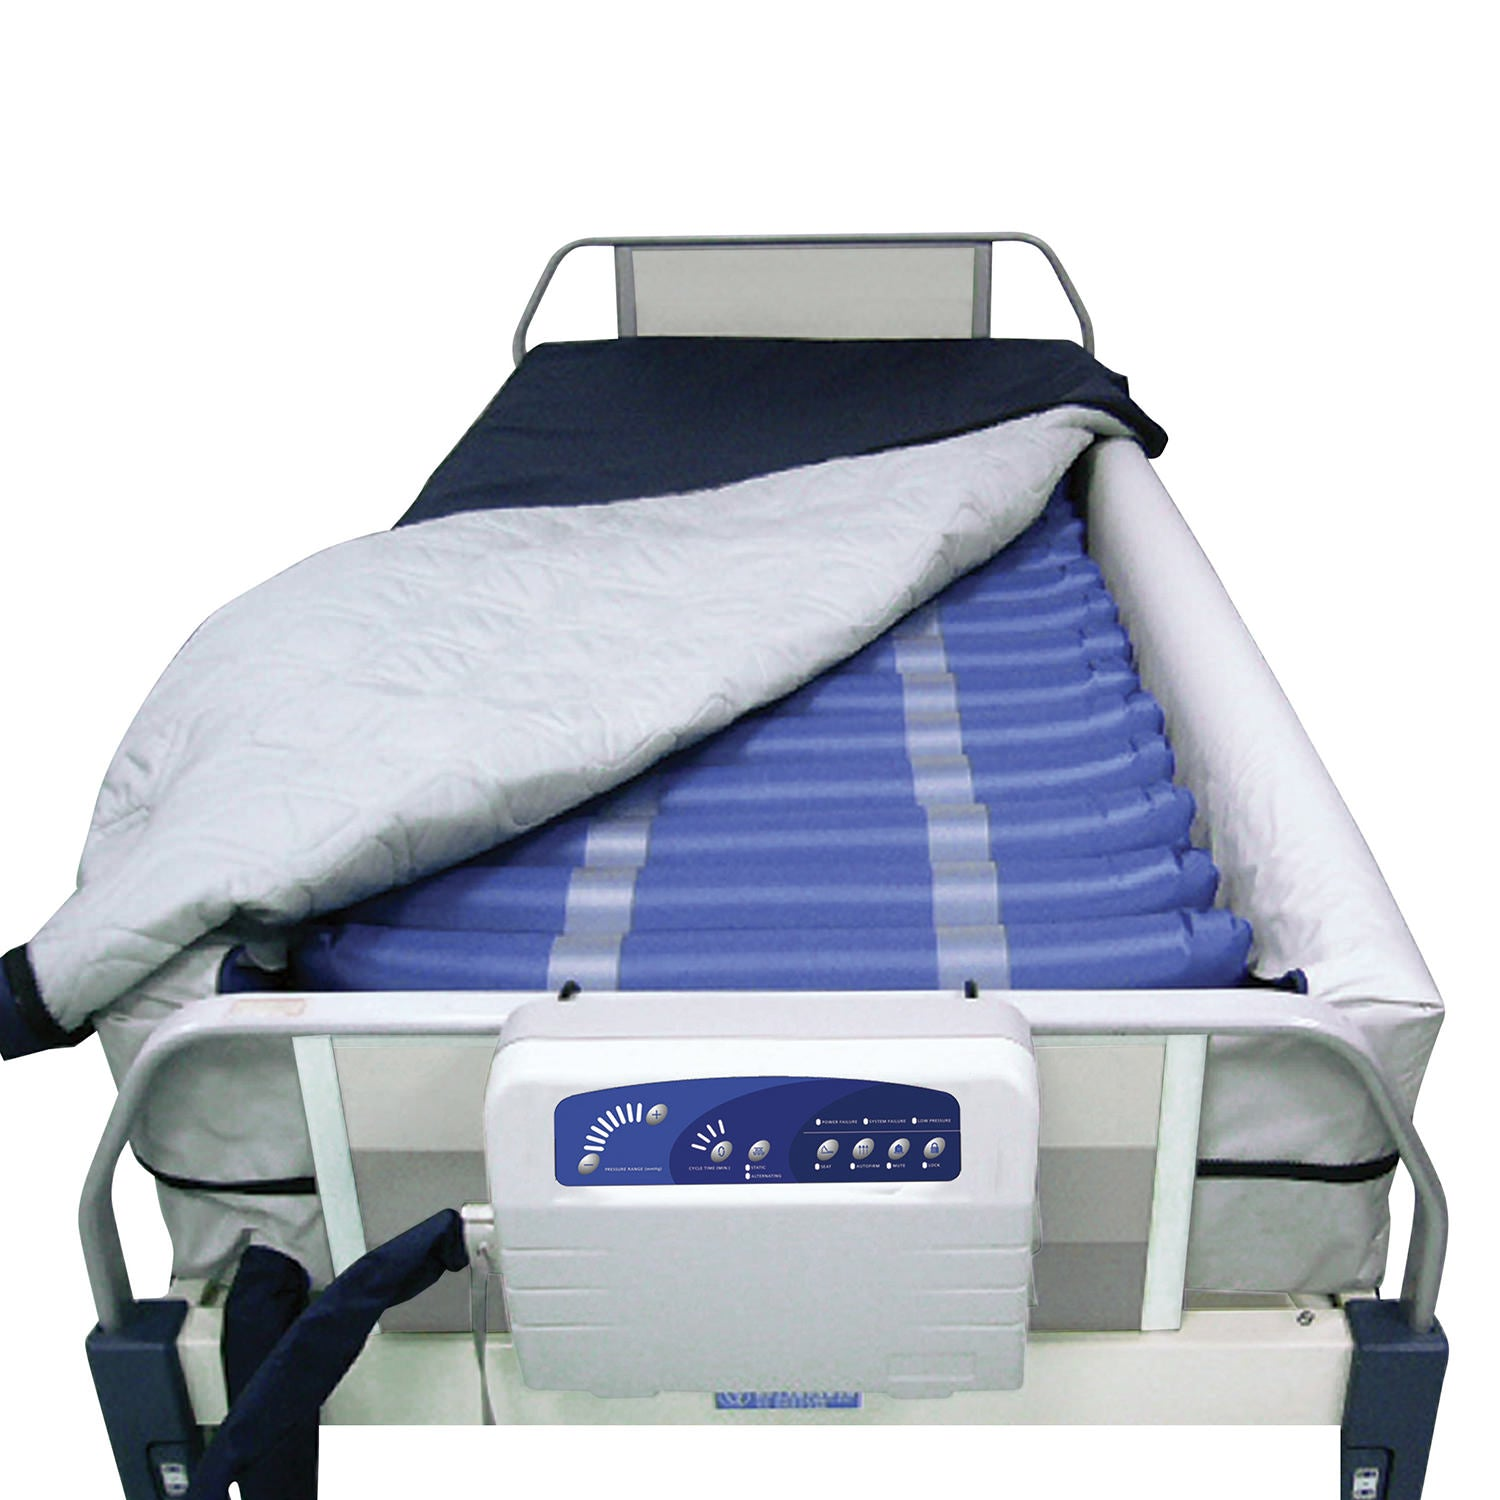 Med-Aire Plus Alternating Pressure Mattress Replacement System with Low Air Loss and Elevated Perimeter